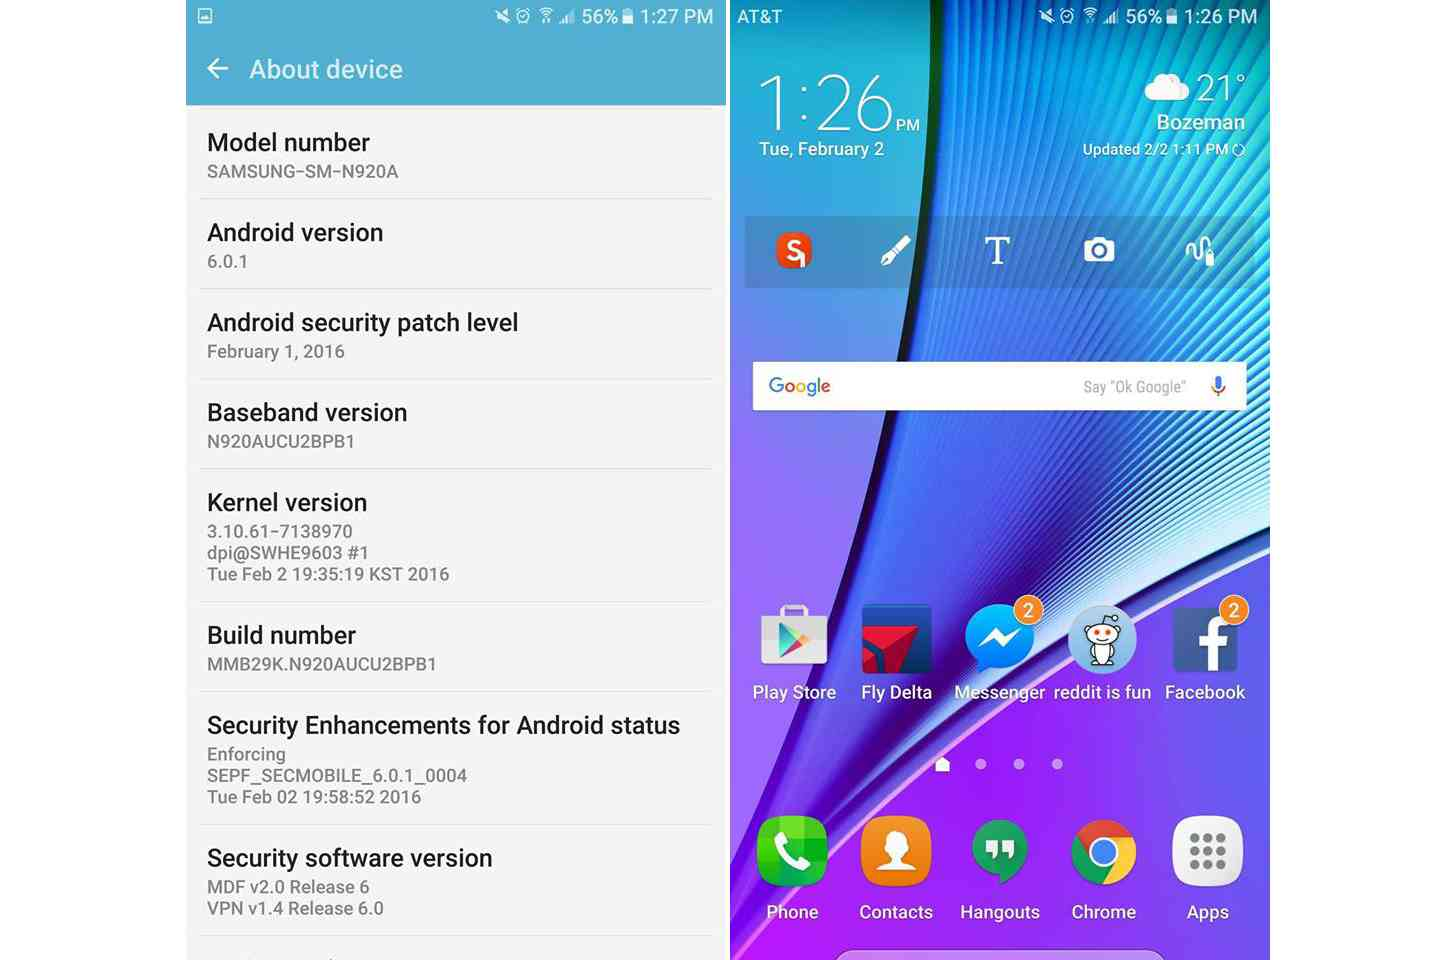 Galaxy Note 5 Android 6.0.1 Marshmallow 3